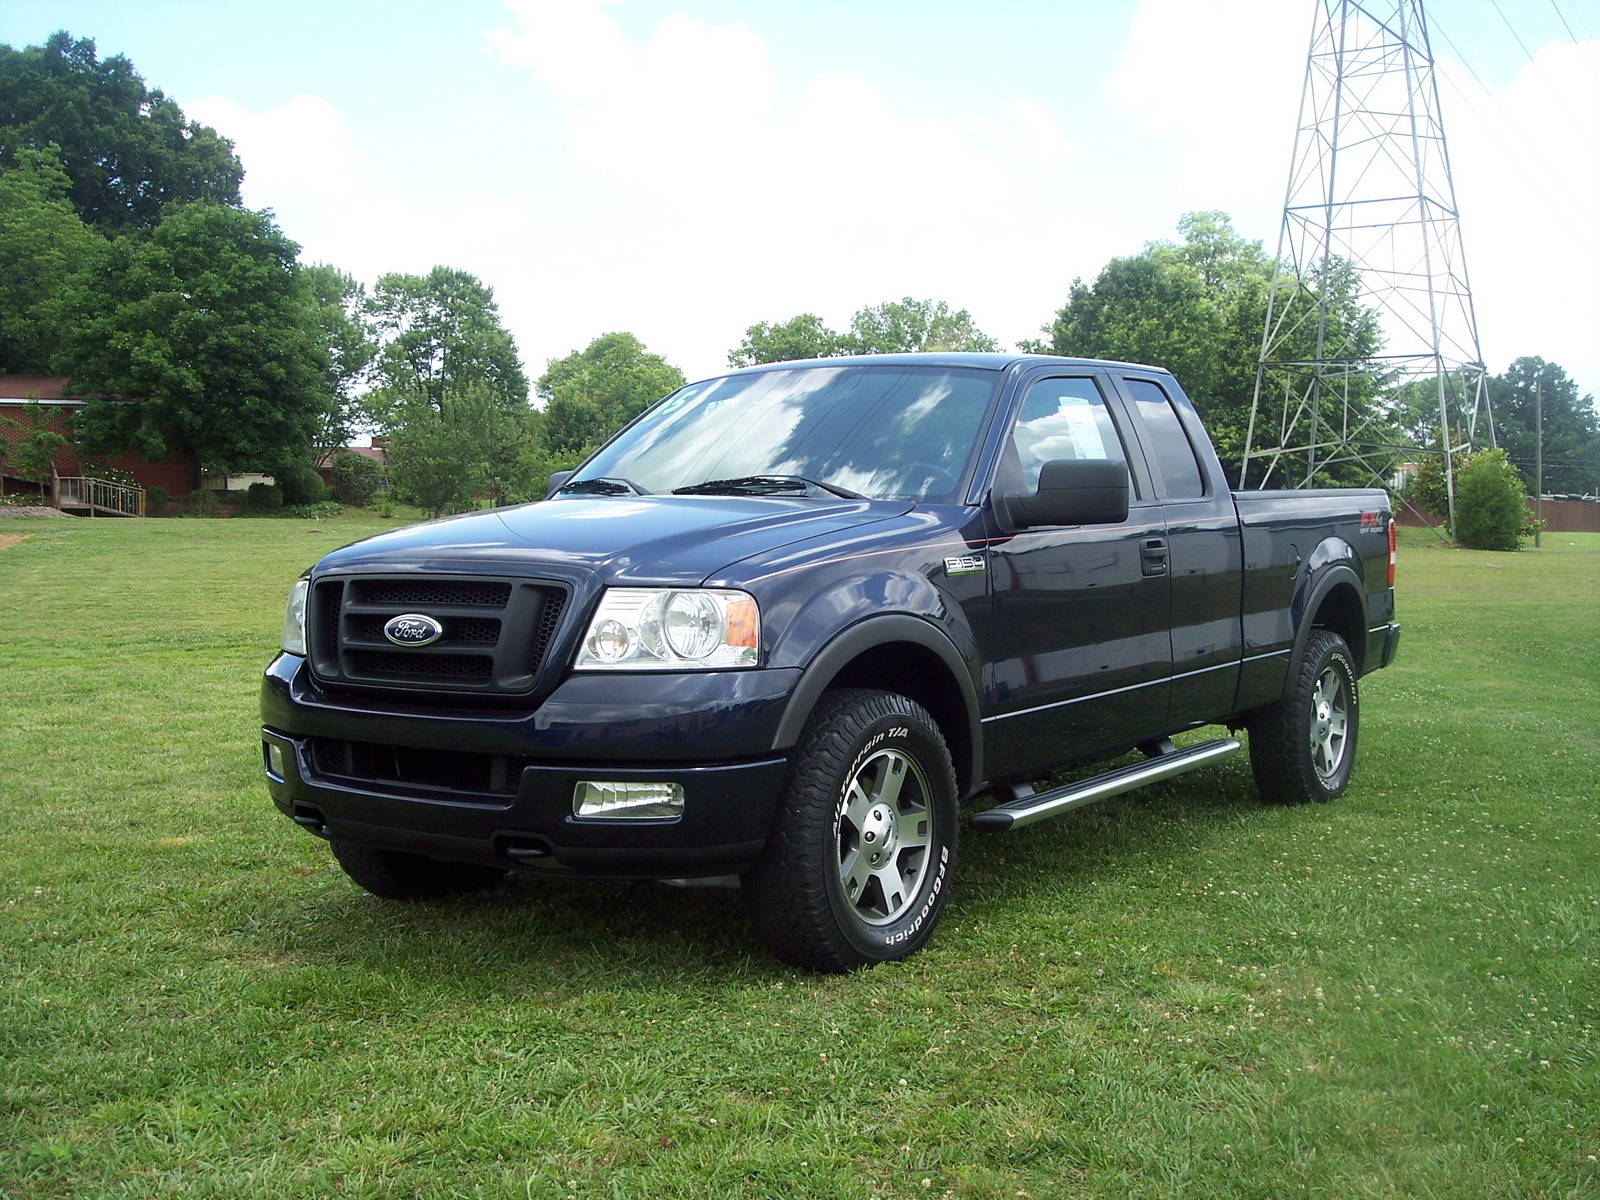 2004 F150 Fx4 Radio Wiring Diagram Master Blogs On 2007 F 150 Kit Car Autos Post Rear With Amp Ford Stereo